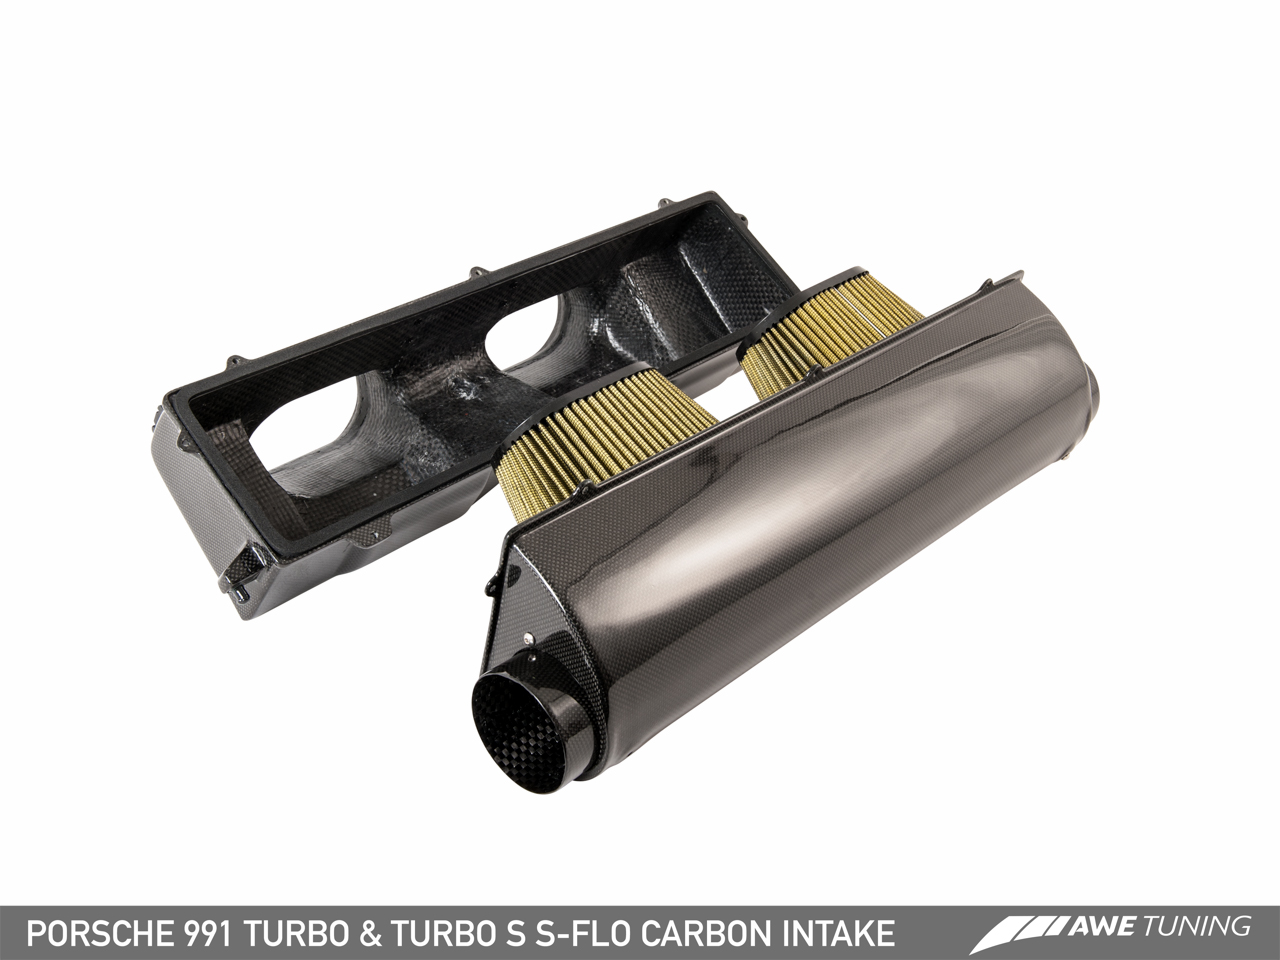 Available Now: The AWE Tuning Porsche 991 Turbo and Turbo S S-FLO Carbon Intake